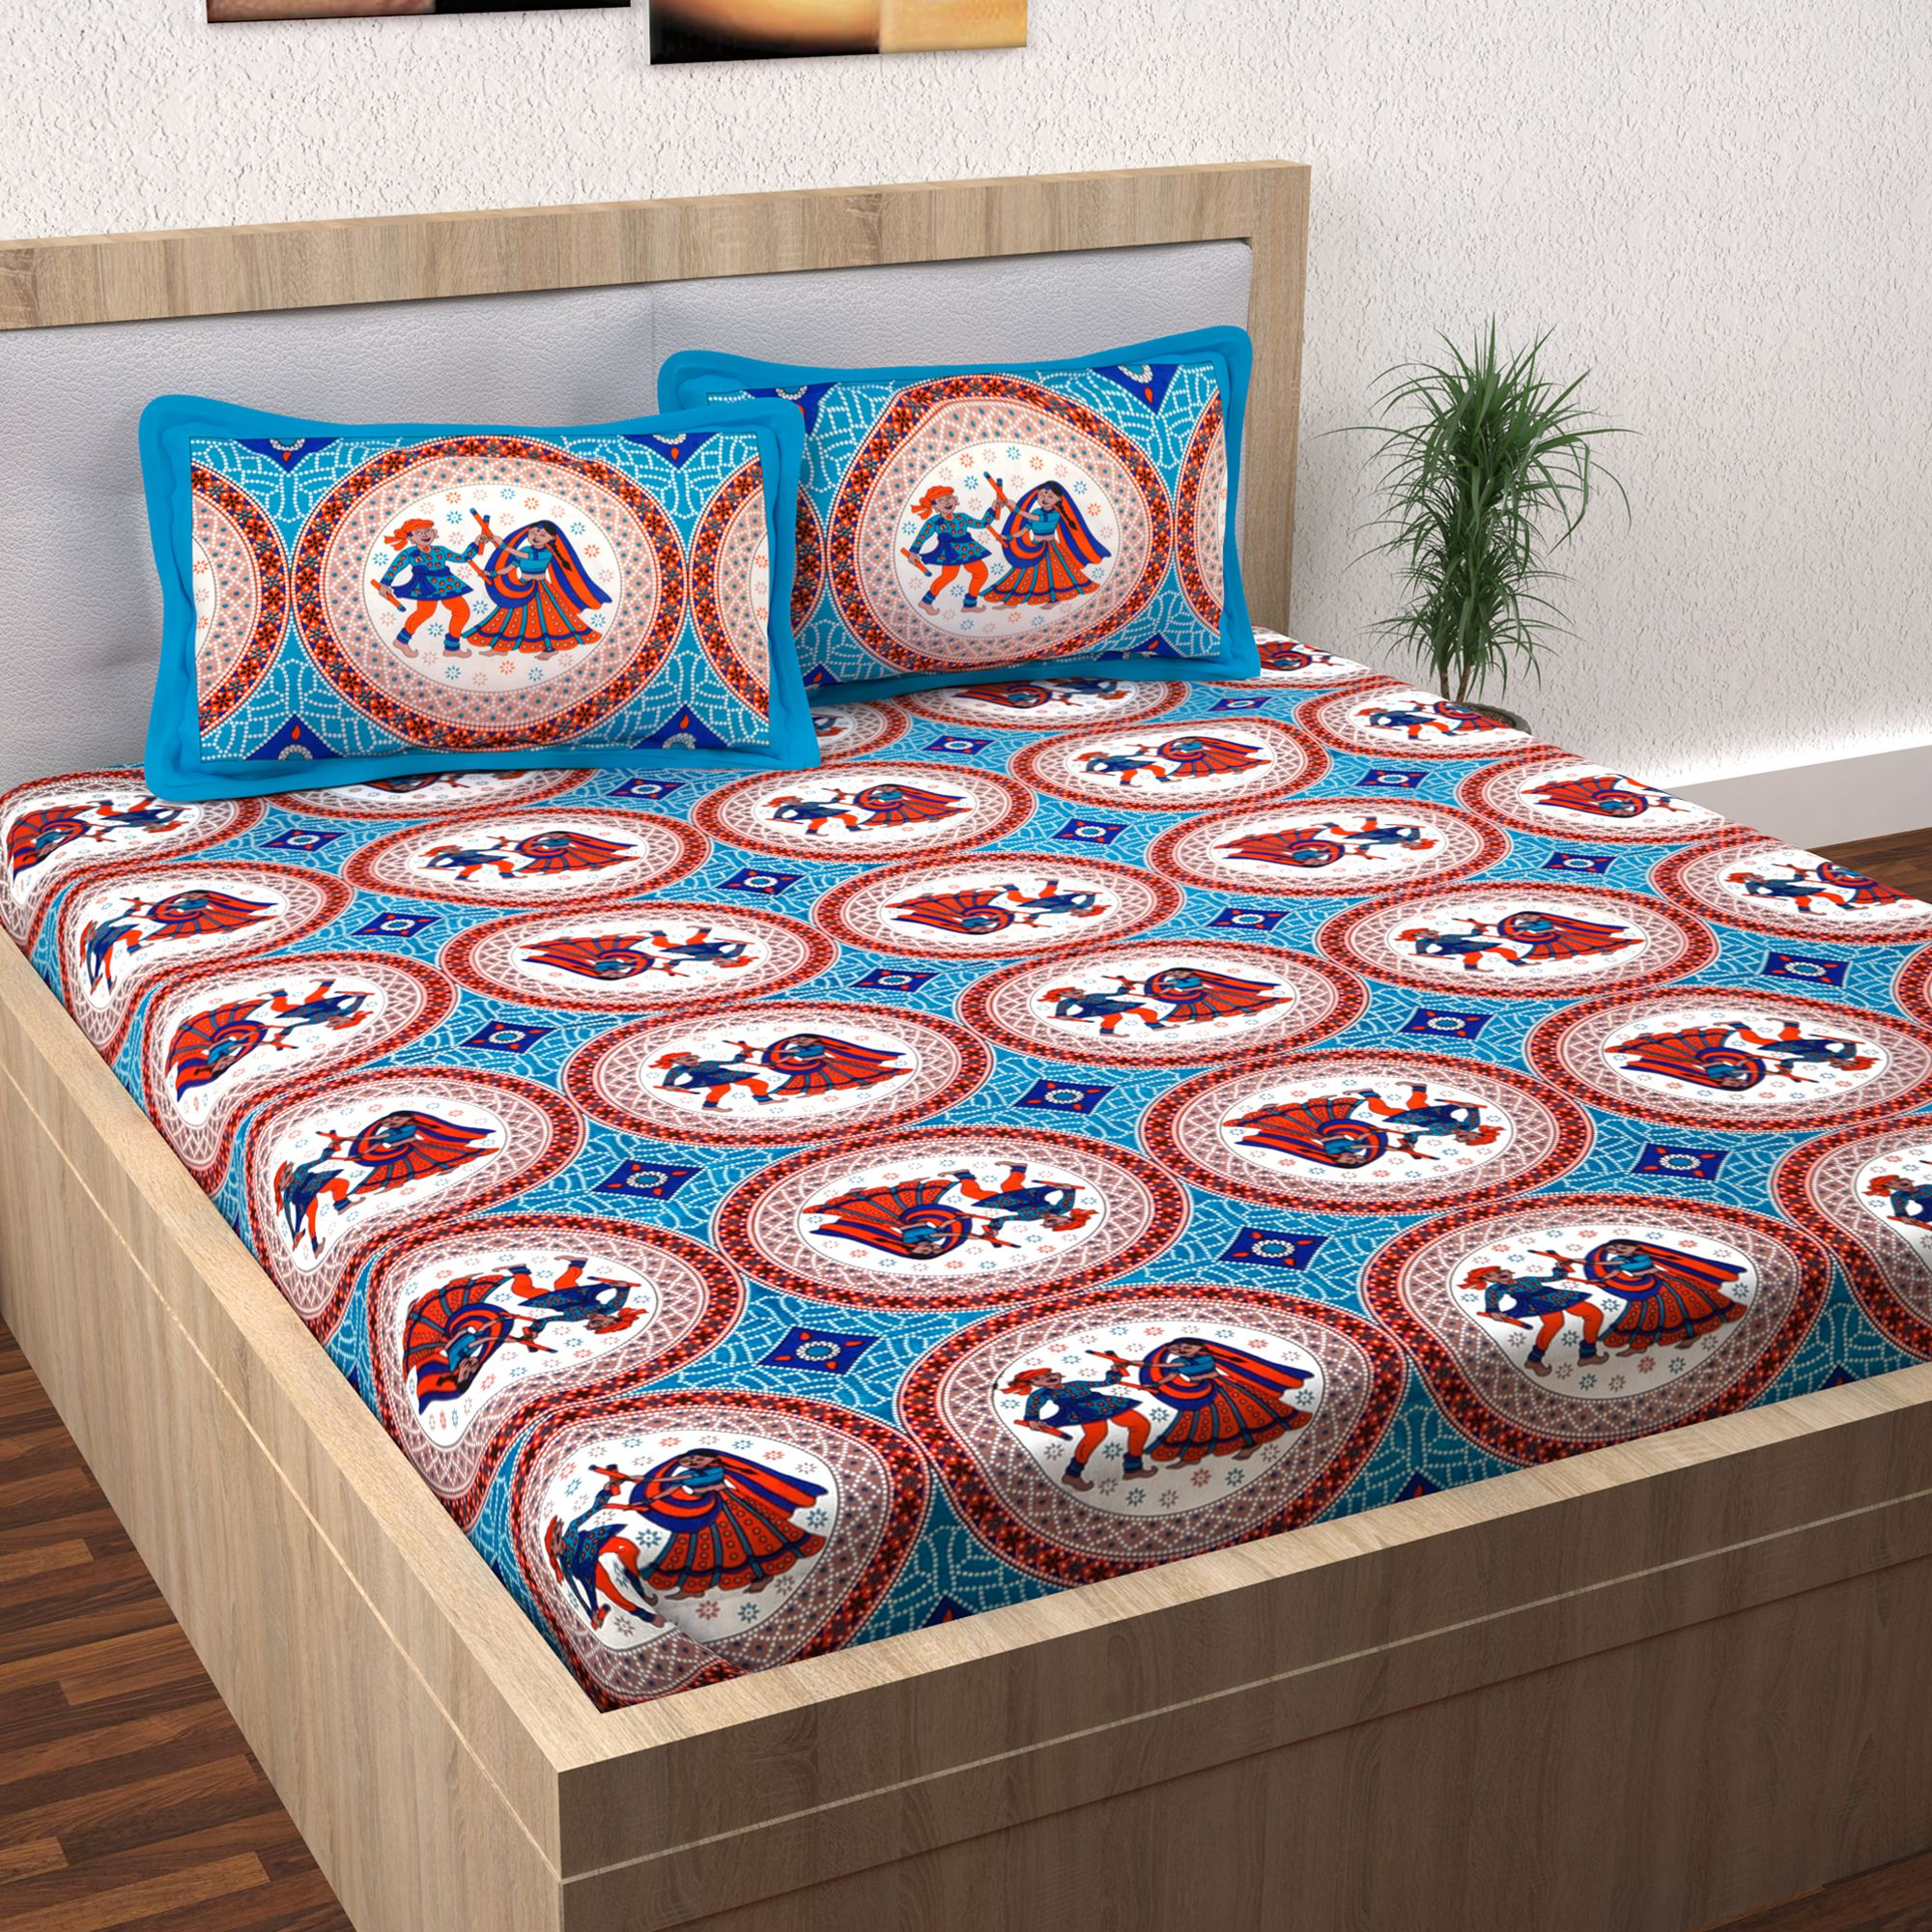 Story Home Cotton Kalamkari Double Bedsheet with 2 Pillow Covers